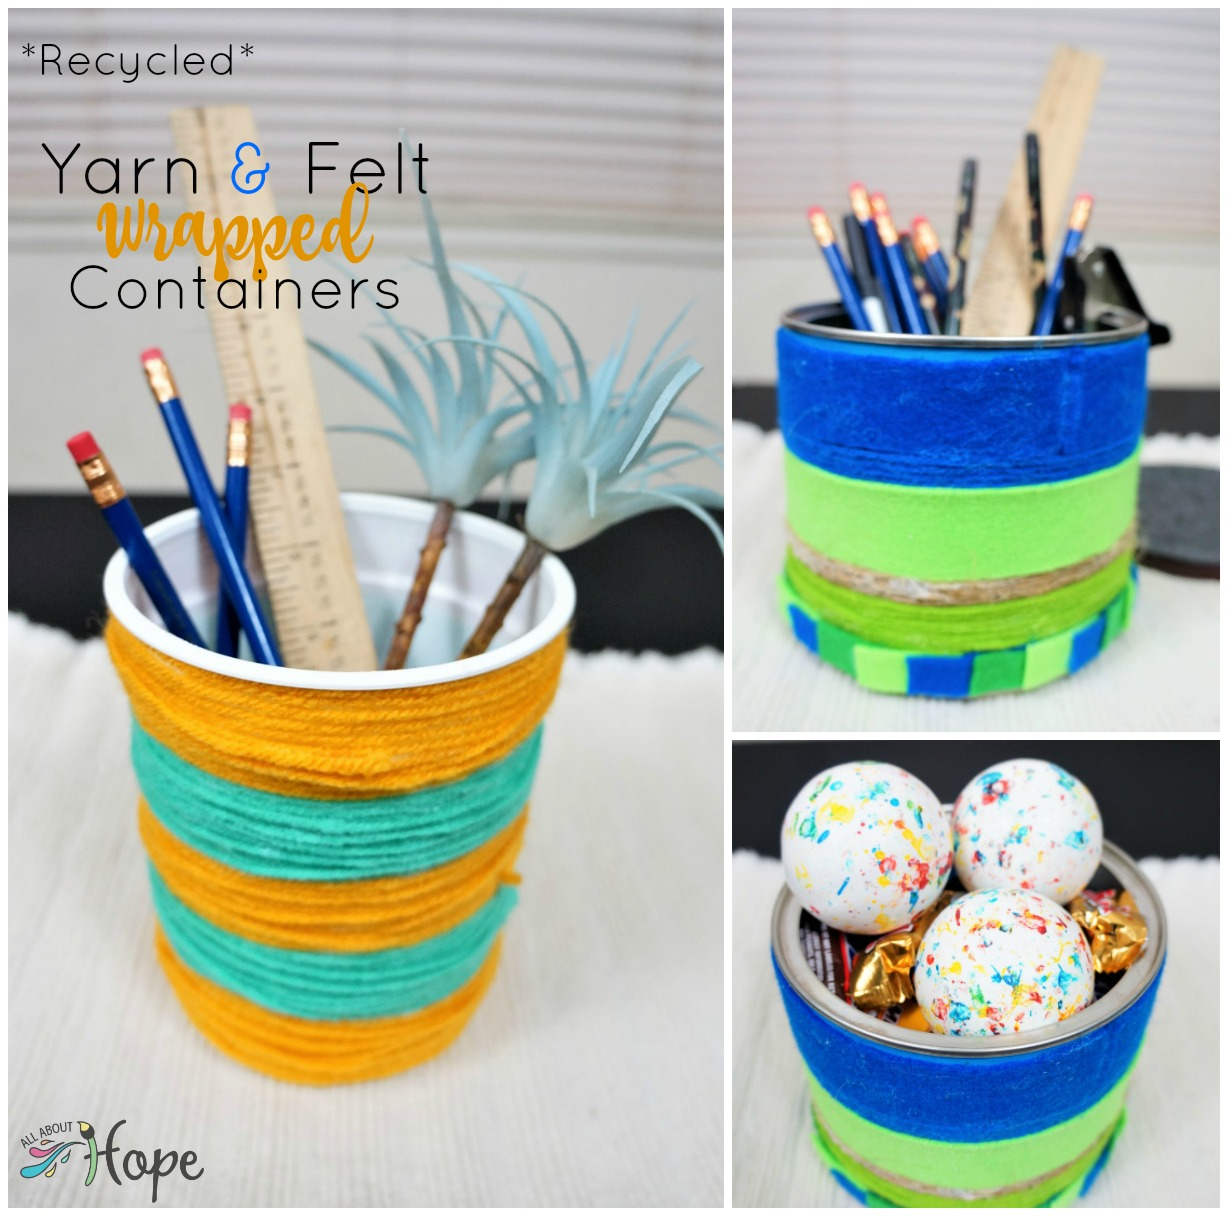 Yarn Wrapped Containers, Felt wrapped containers, DIY felt containers, DIY yarn containers, Recycled container crafts, Yarn crafts, Felt crafts, All About Hope projects